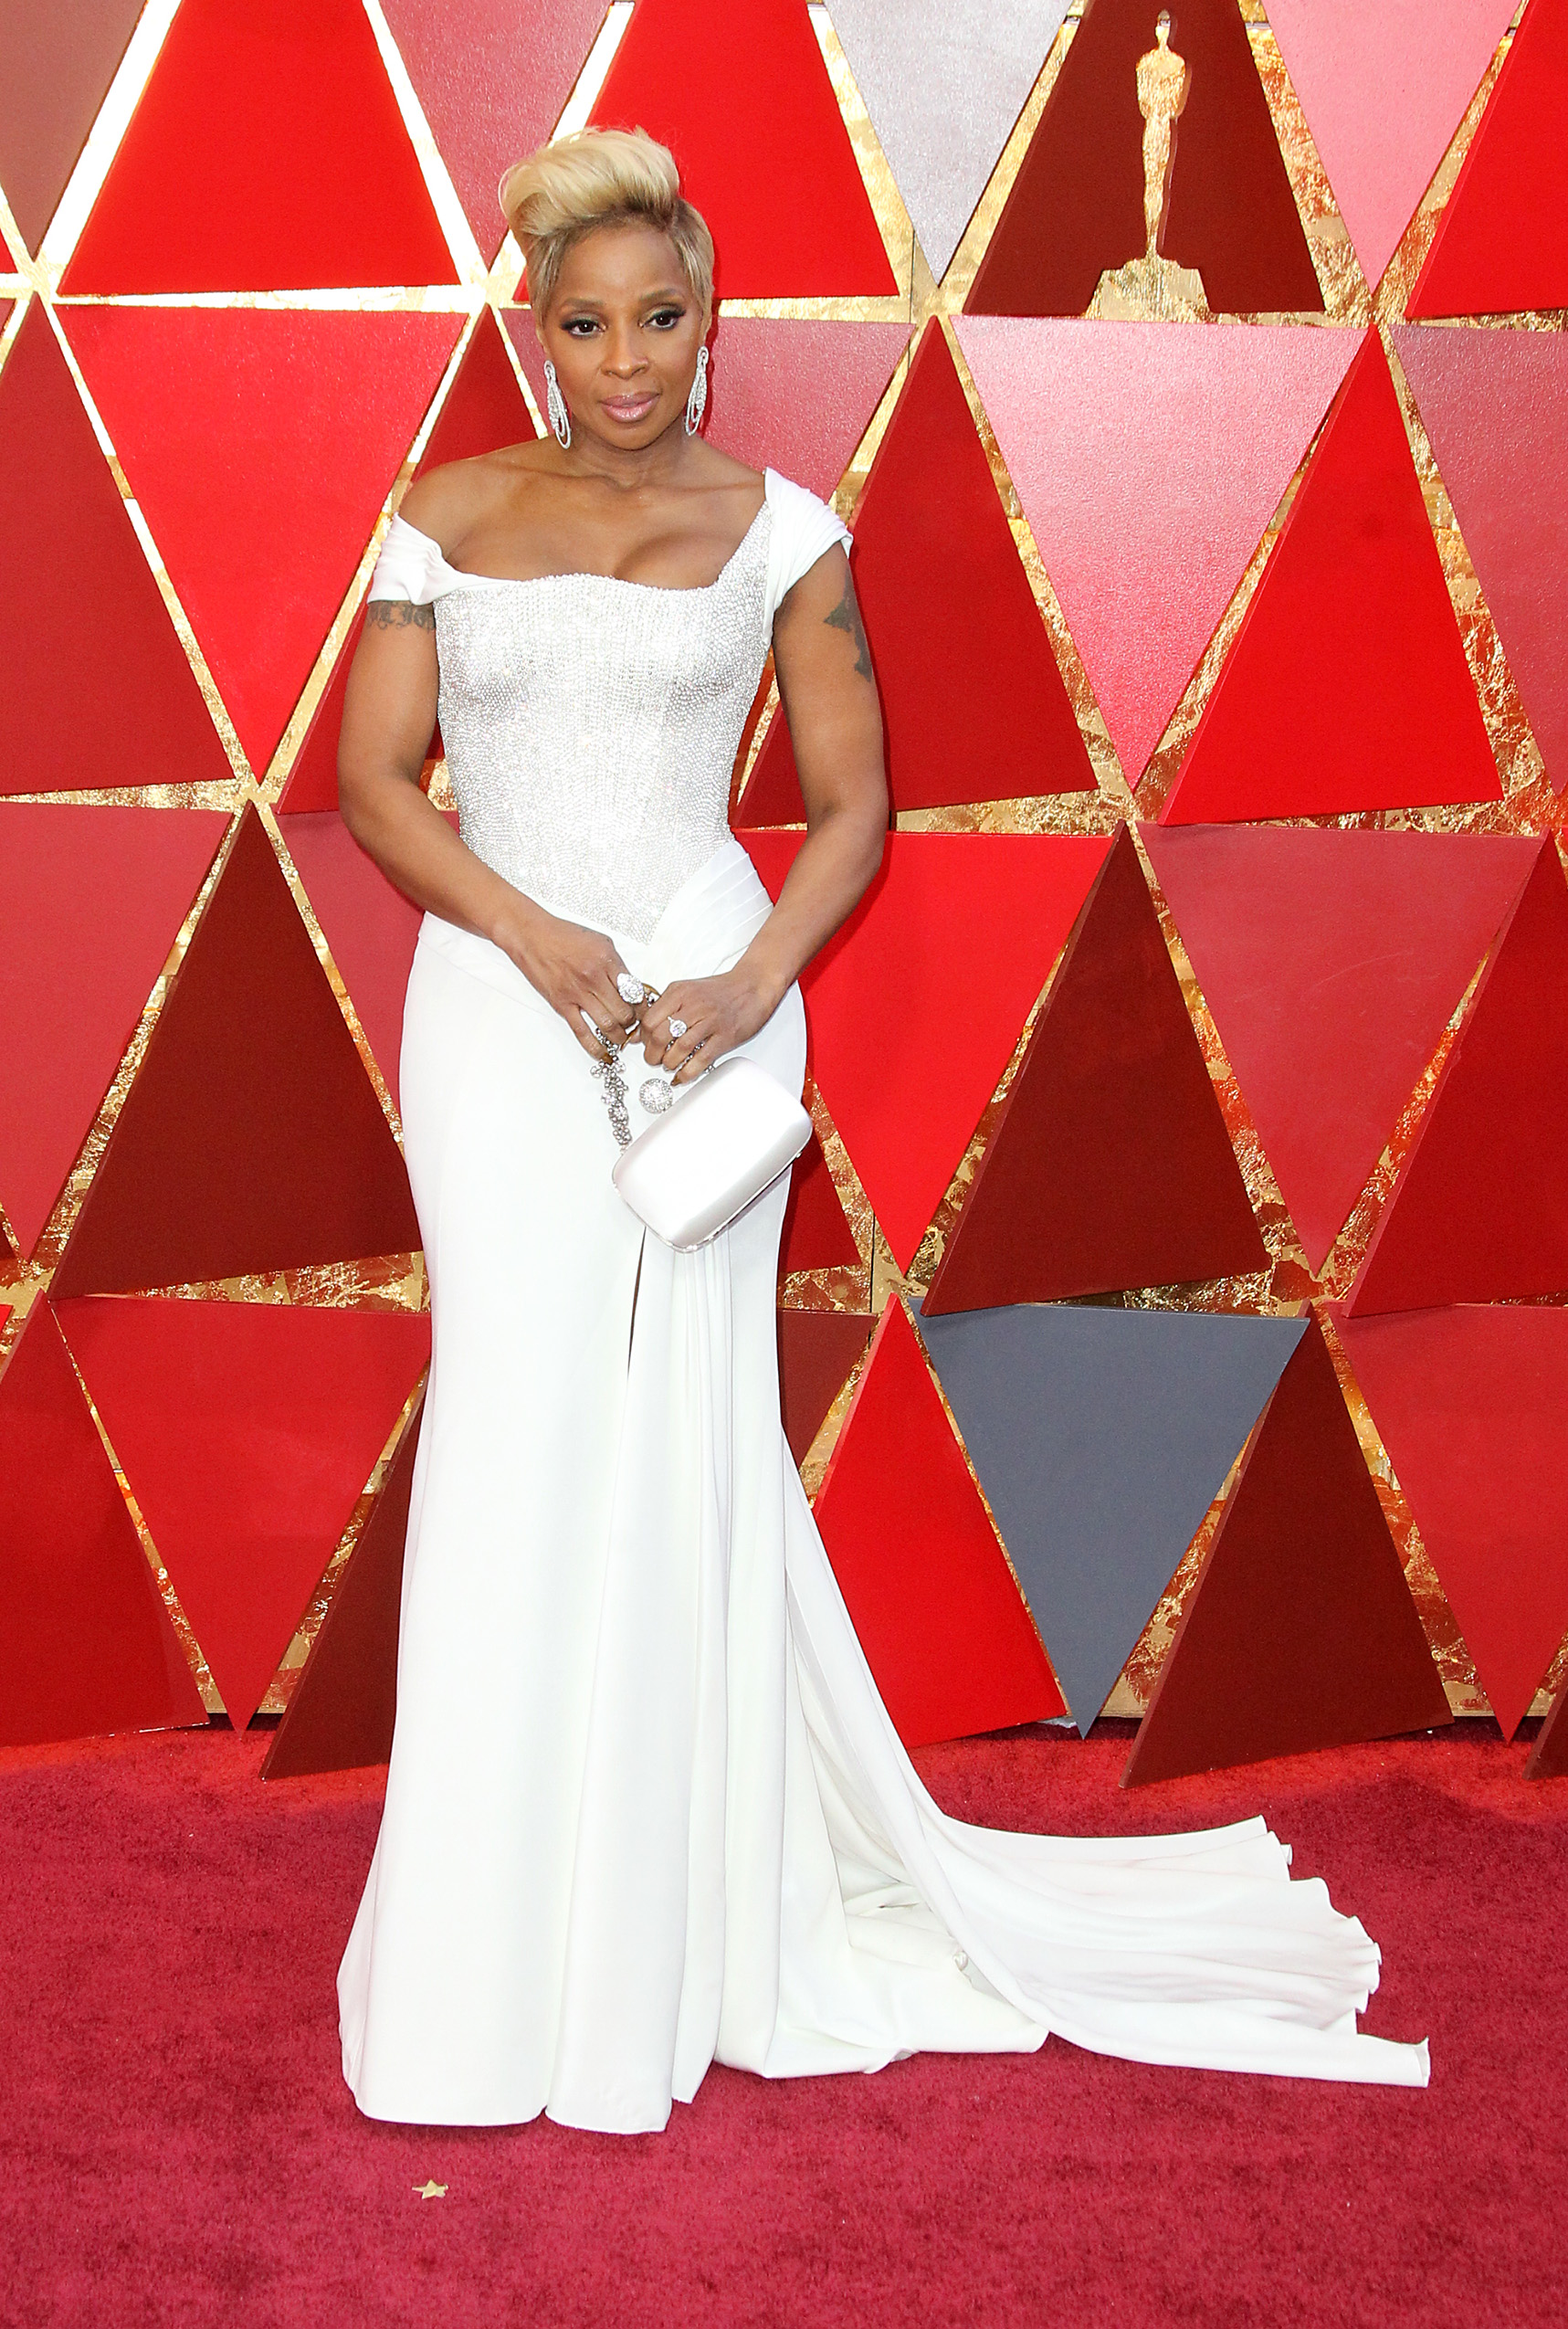 Mary J. Blige{&nbsp;}arrives at the 90th Annual Academy Awards (Oscars) held at the Dolby Theater in Hollywood, California. (Image: Adriana M. Barraza/WENN.com){&nbsp;}<p></p>